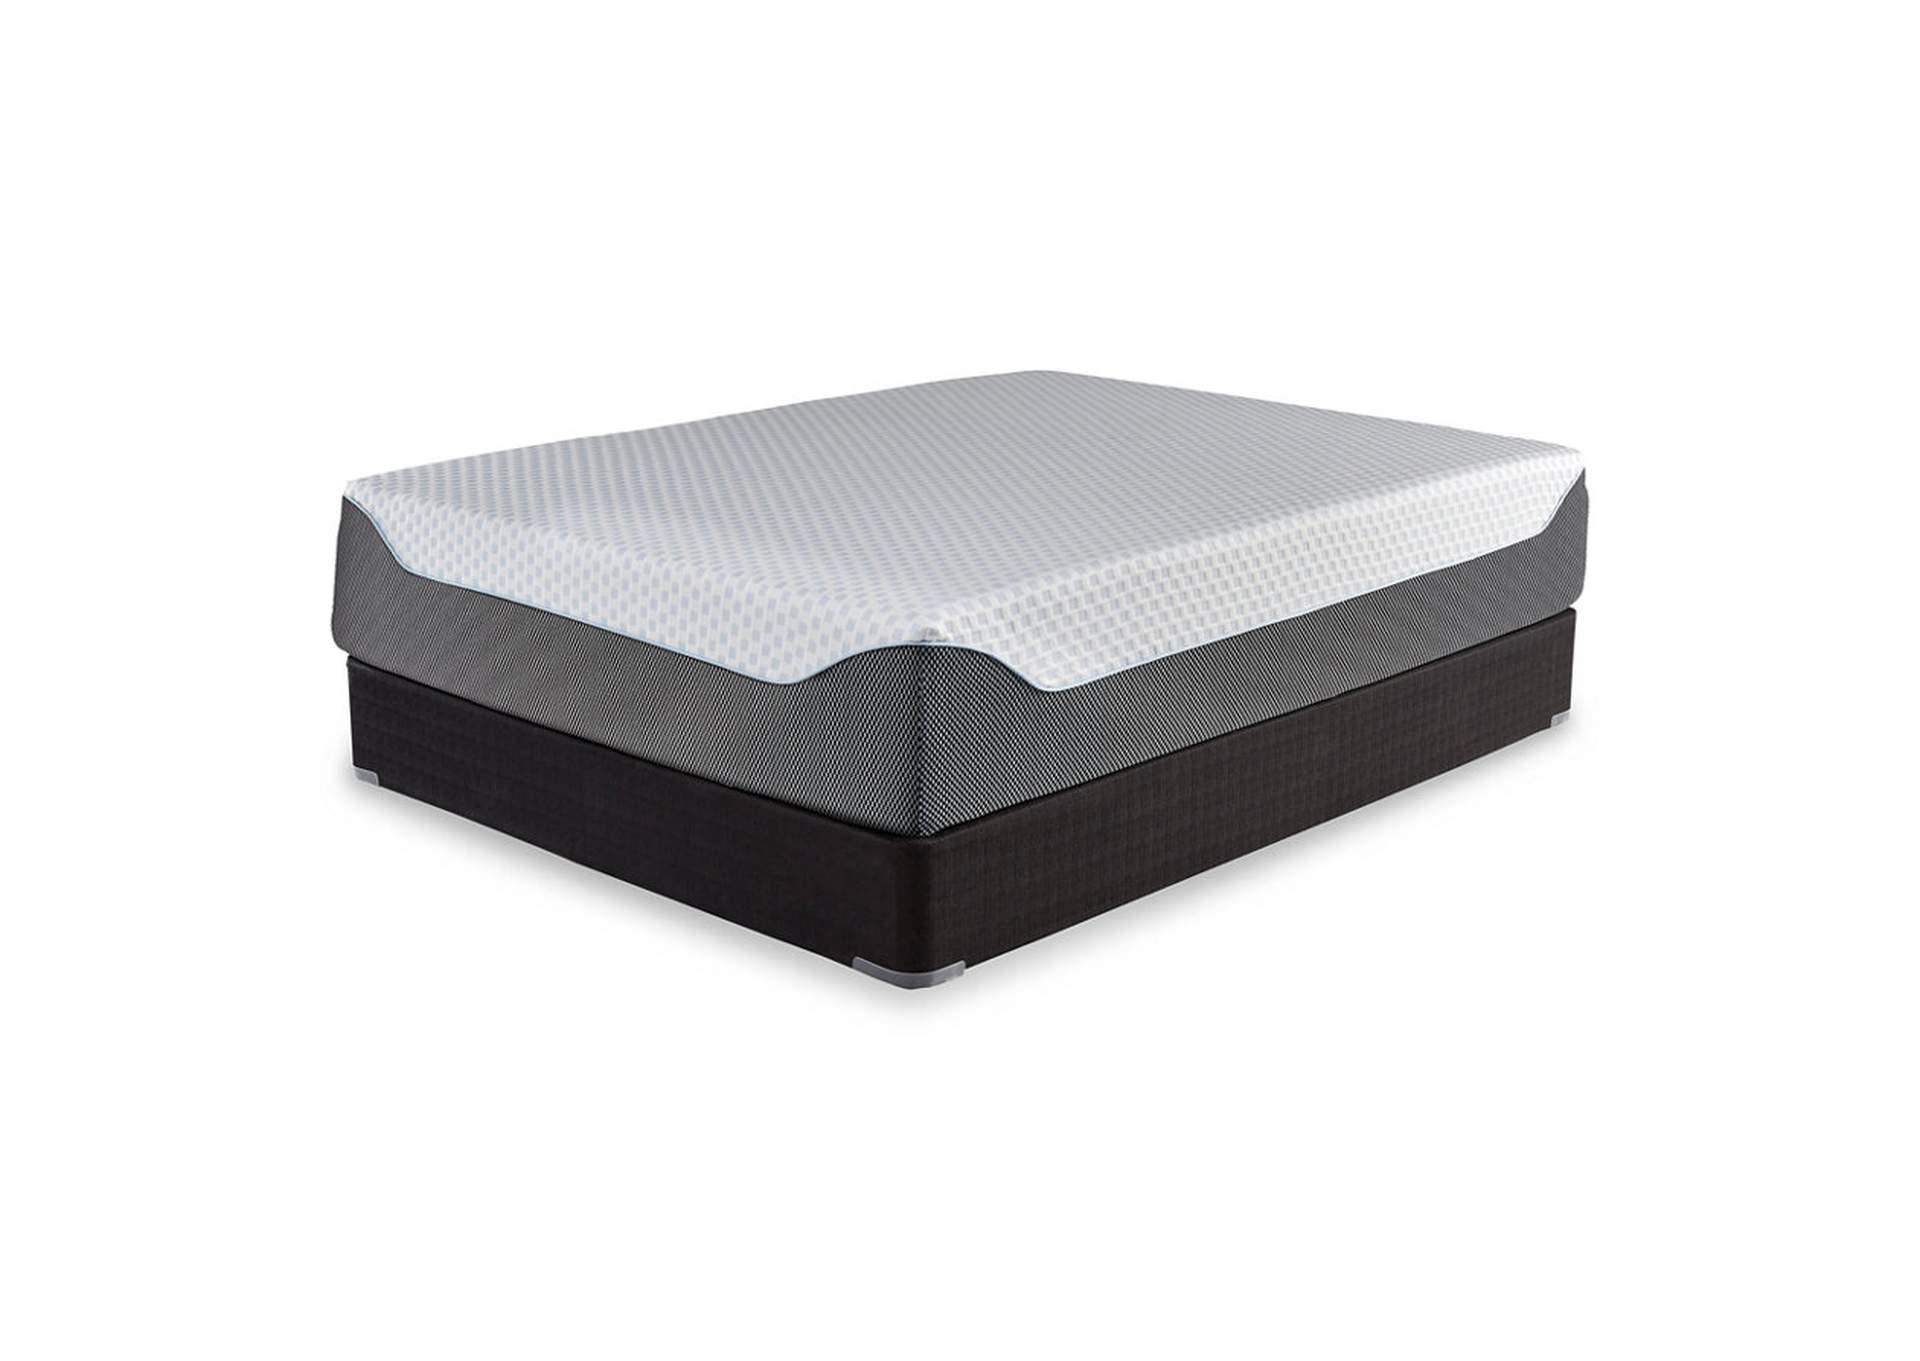 14 Inch Chime Elite Queen Memory Foam Mattress in a Box w/Foundation,Sierra Sleep by Ashley